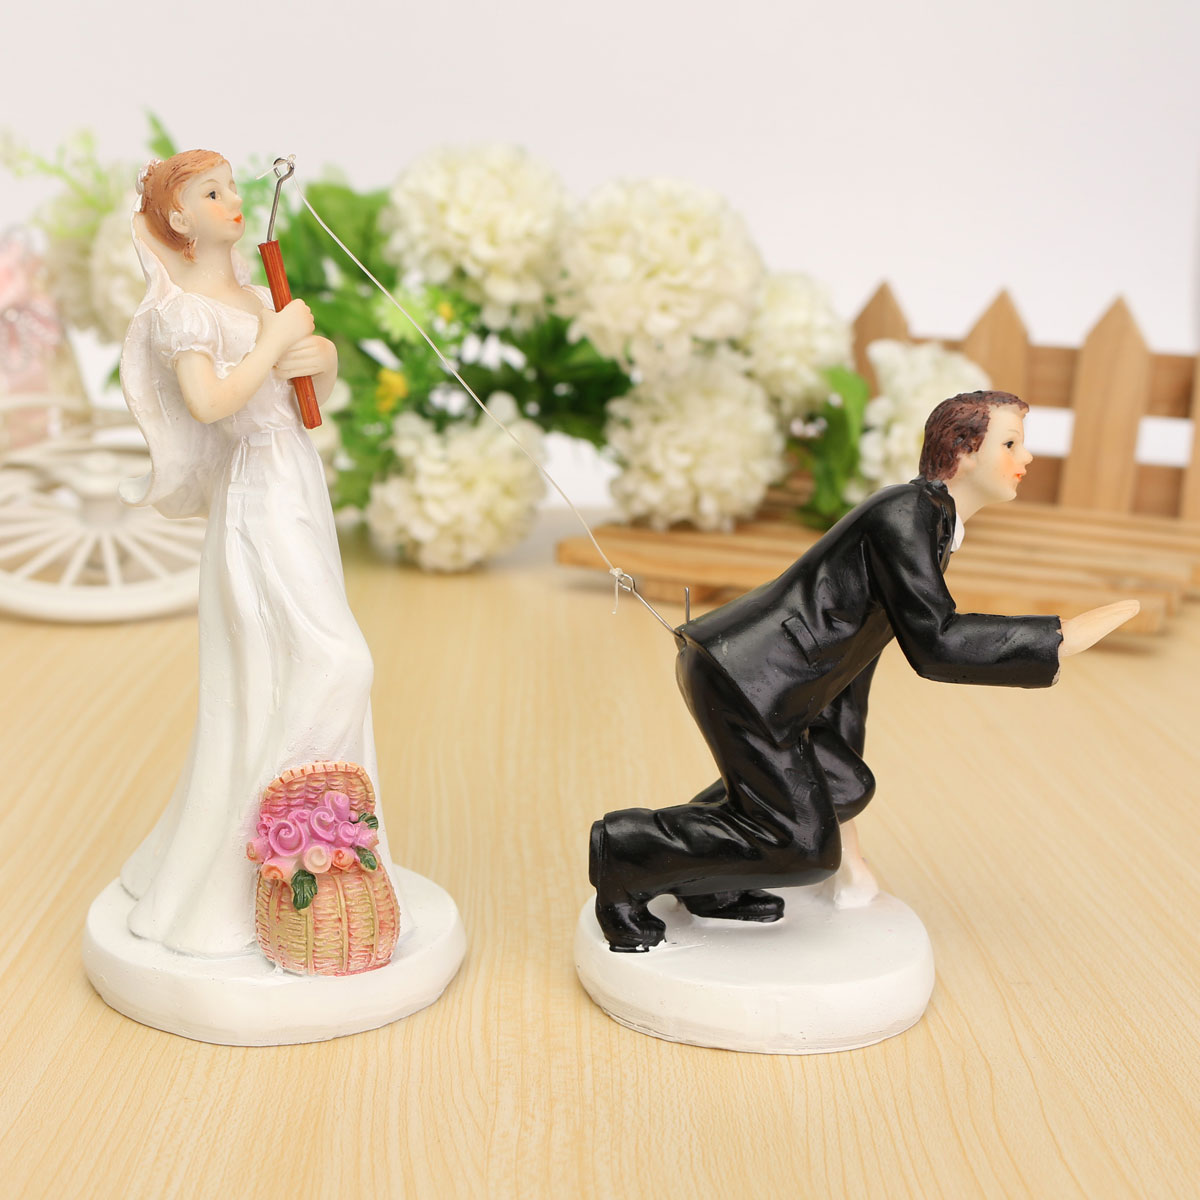 Wedding Cake Toppers - Fishing Bride and Groom Couple, Cake decoration Romantic Couple